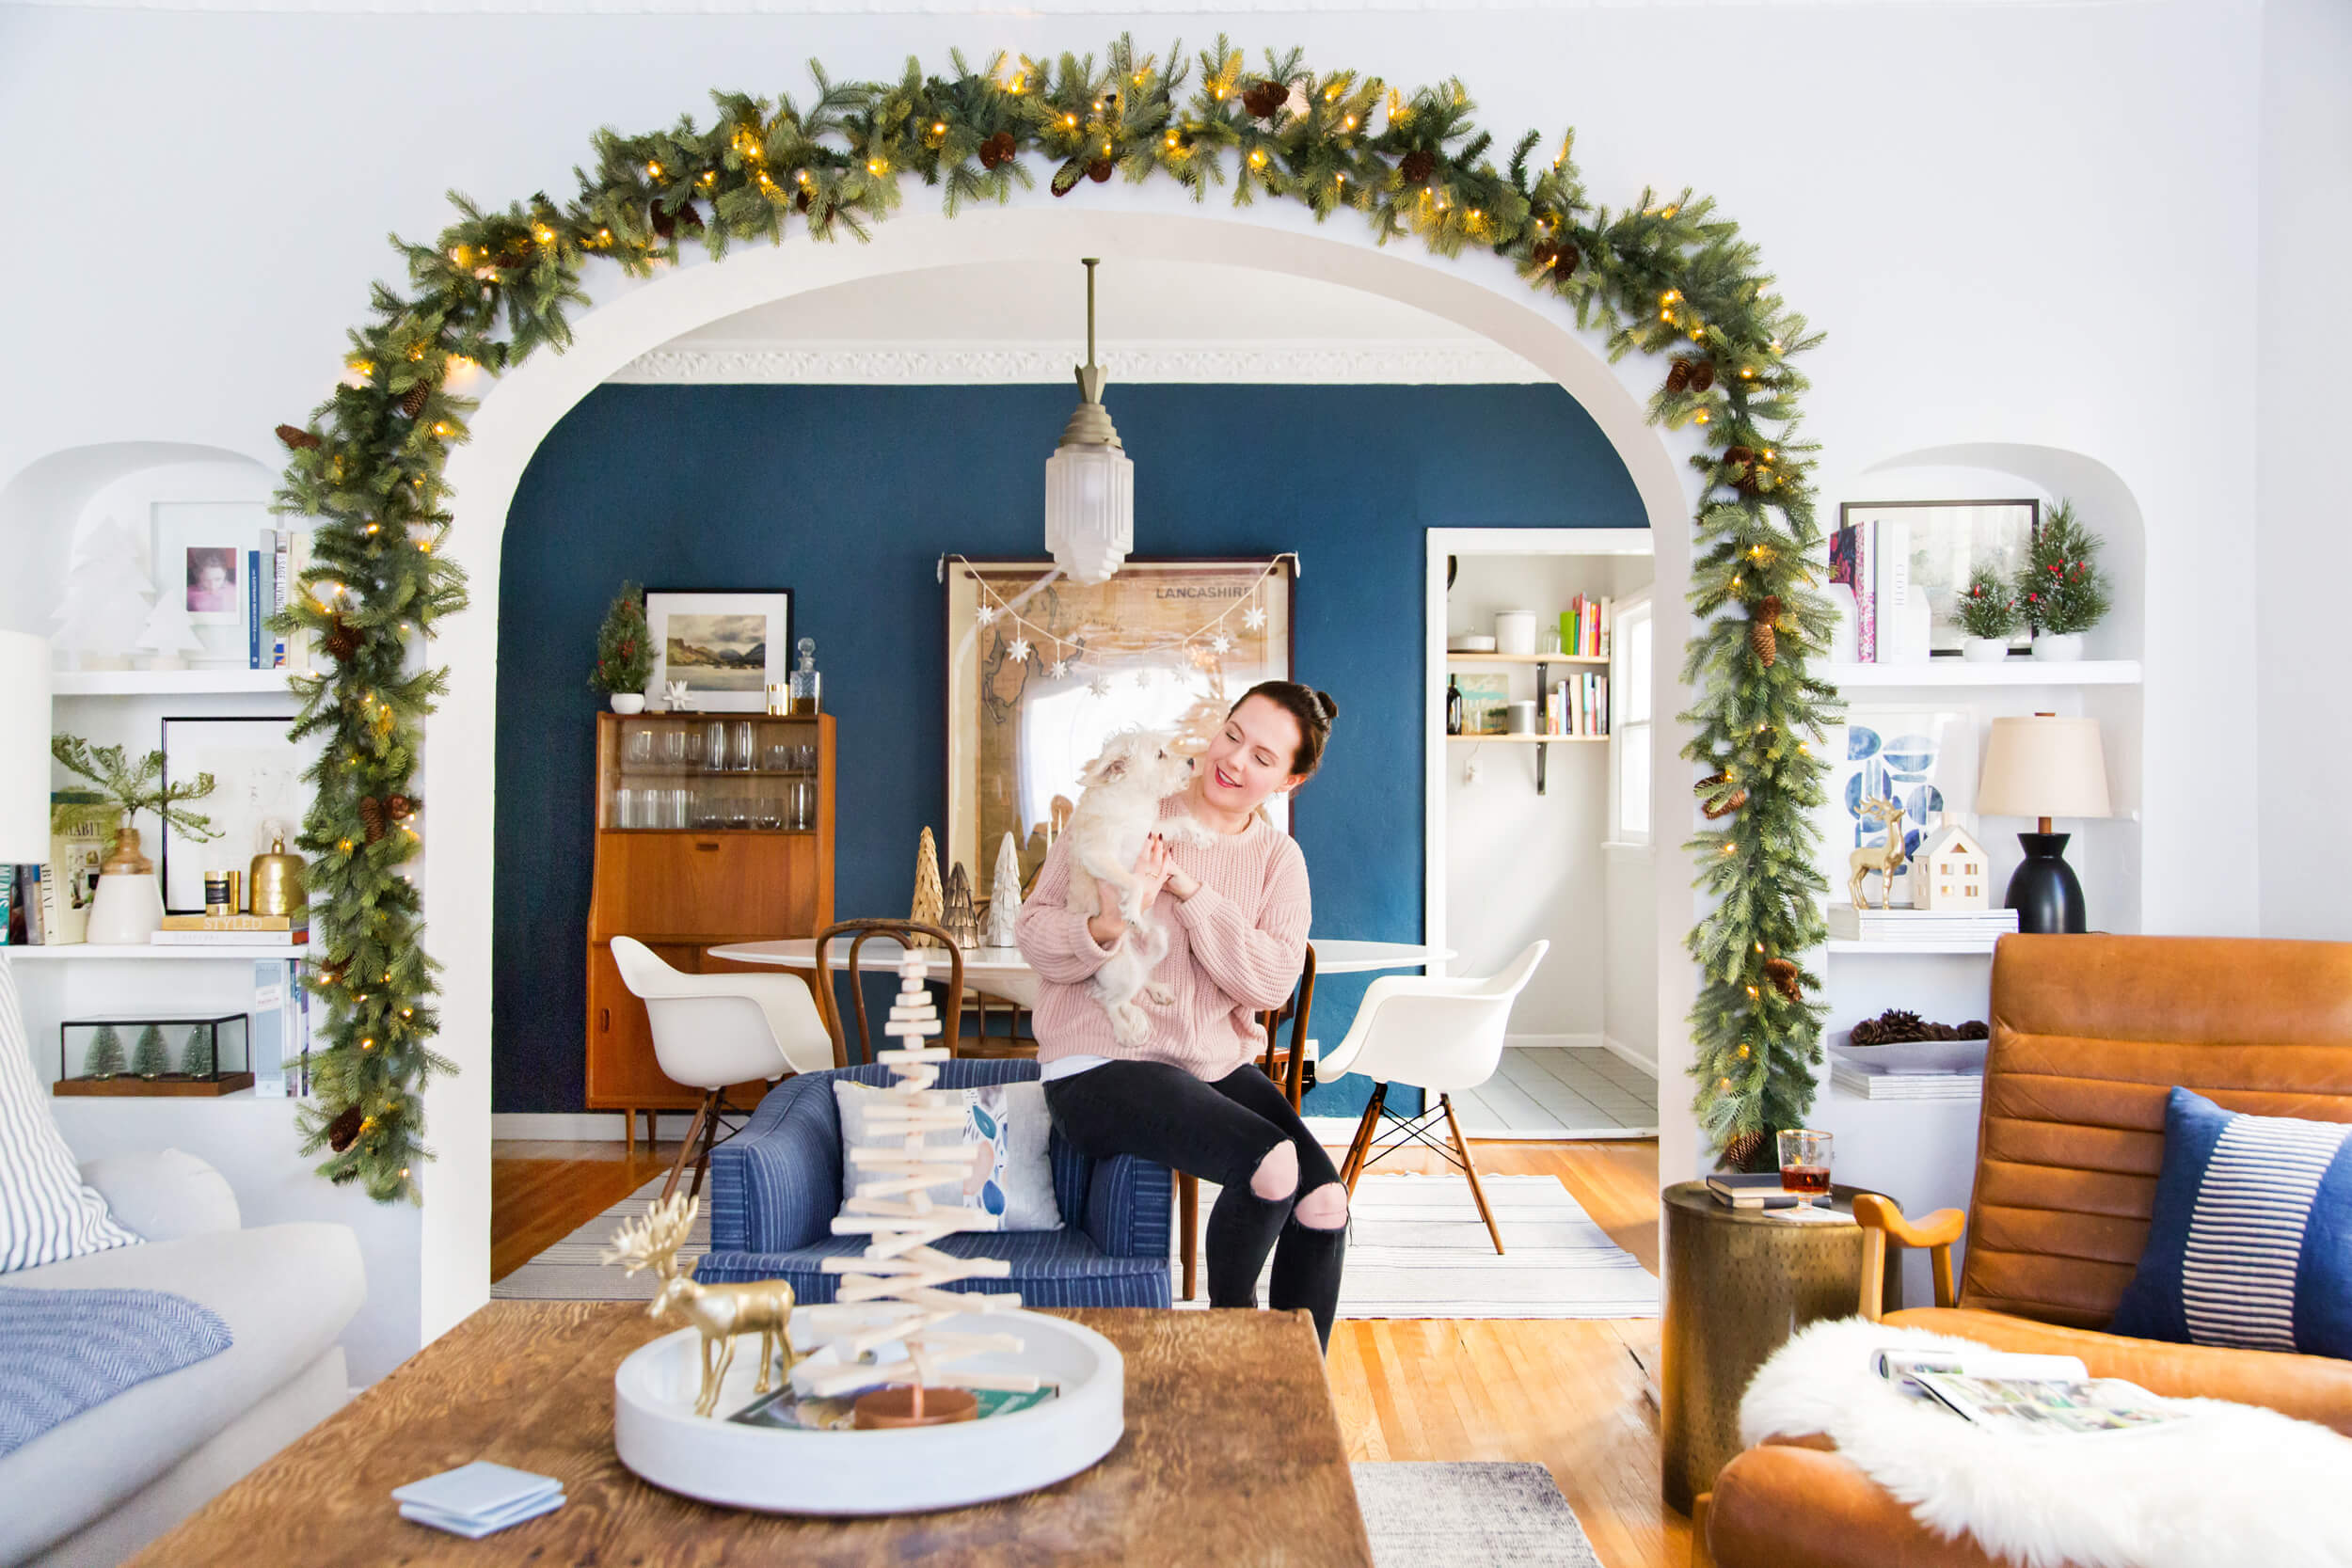 GINNY_MACDONALD_HOLIDAY_DECORATING_CHRISTMAS_WHITE_NEUTRAL_COSY_COTTAGE_14